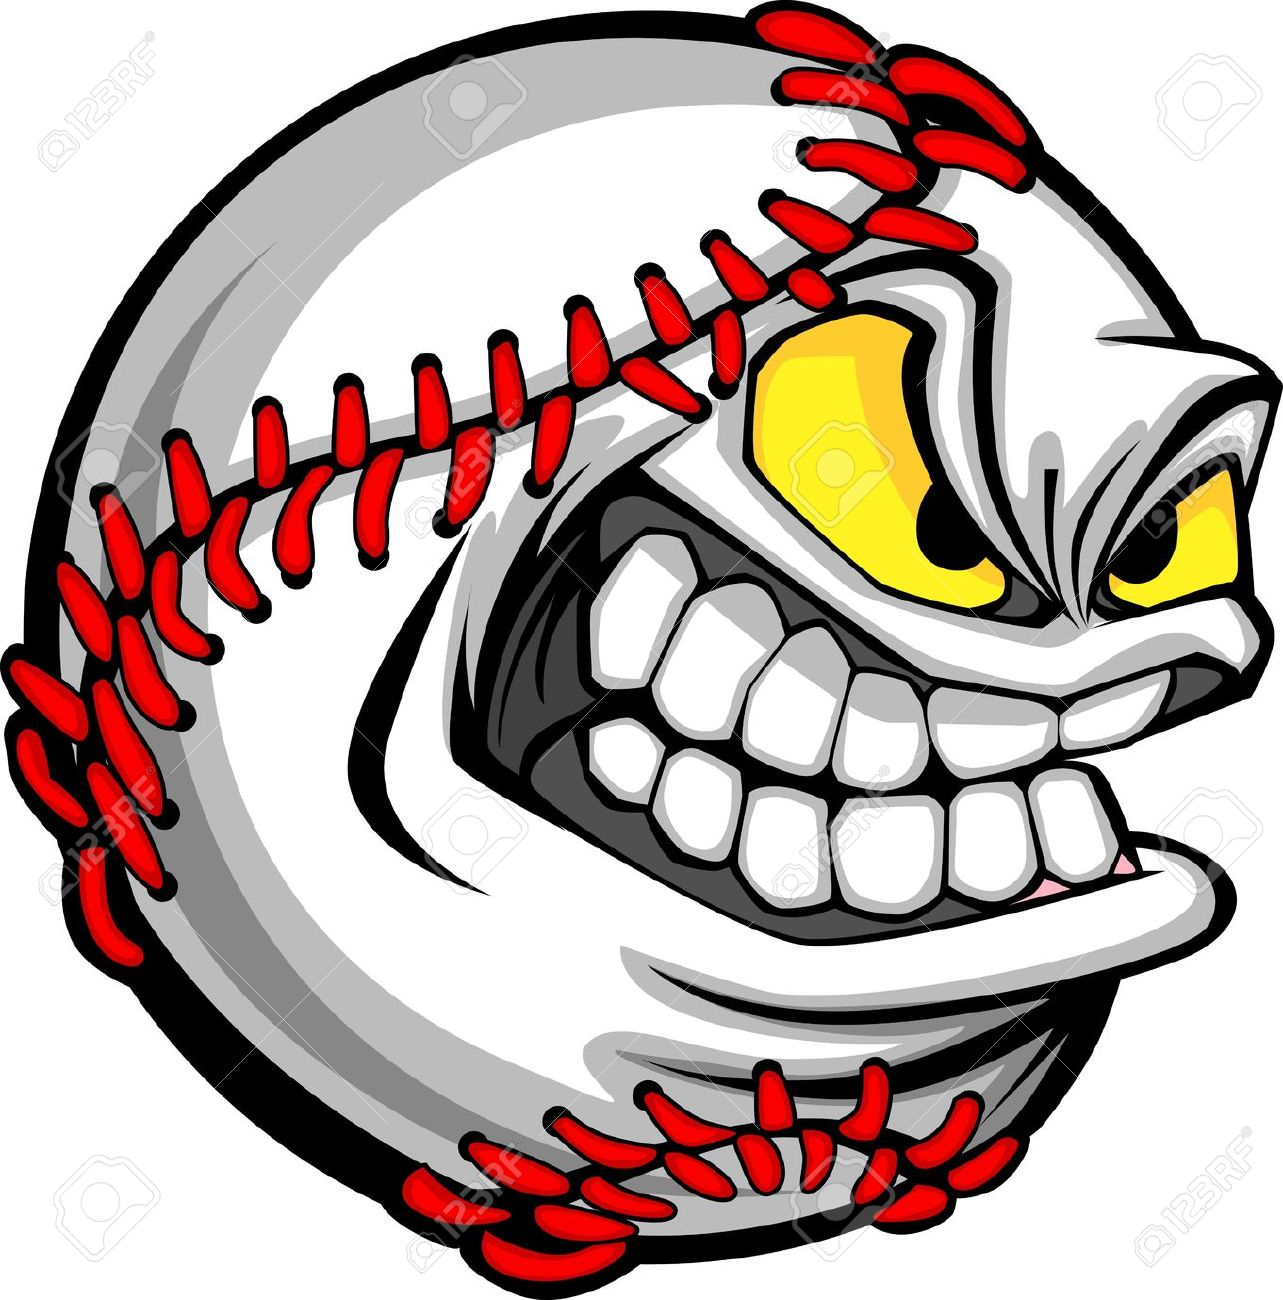 1283x1300 Special Baseball Cartoons Pictures A Boy Catching Cartoon Clipart